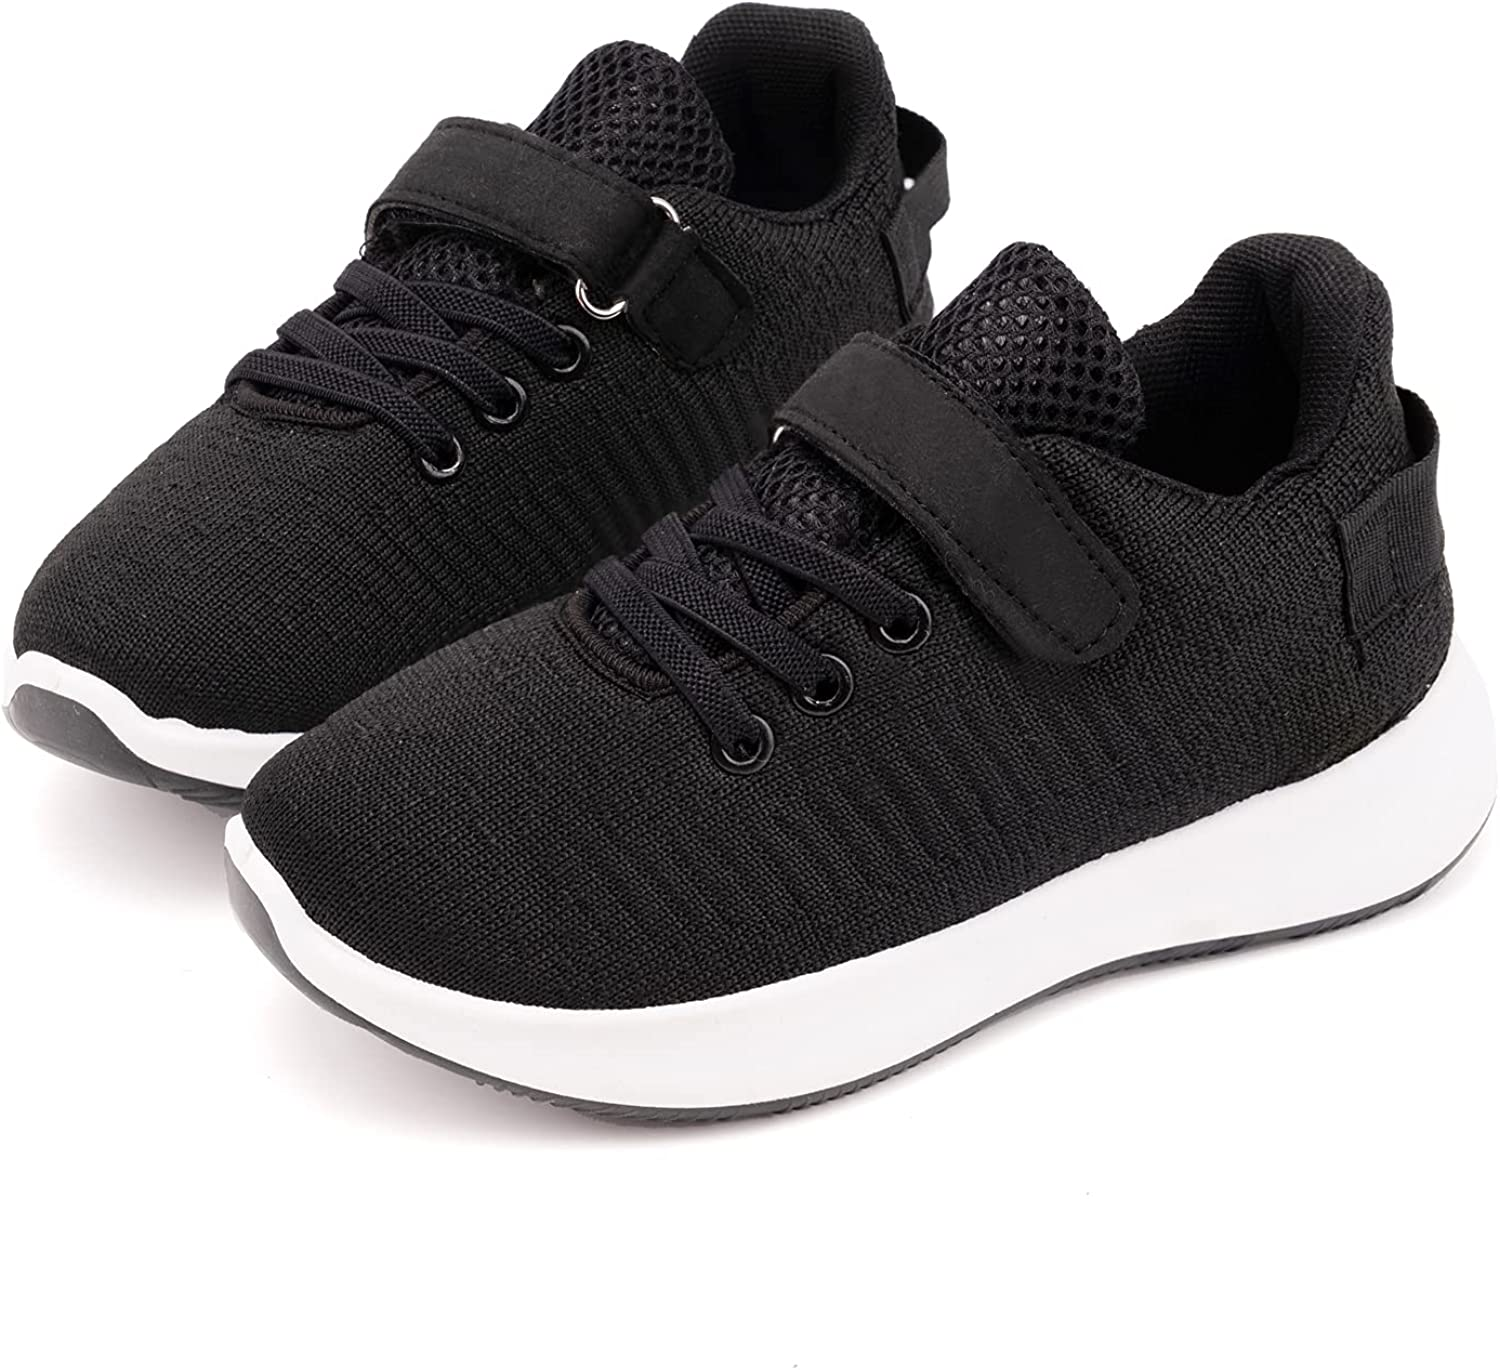 Toandon Toddler Kids Knit Breathable Athletic Sport Sneakers for Age 3-11